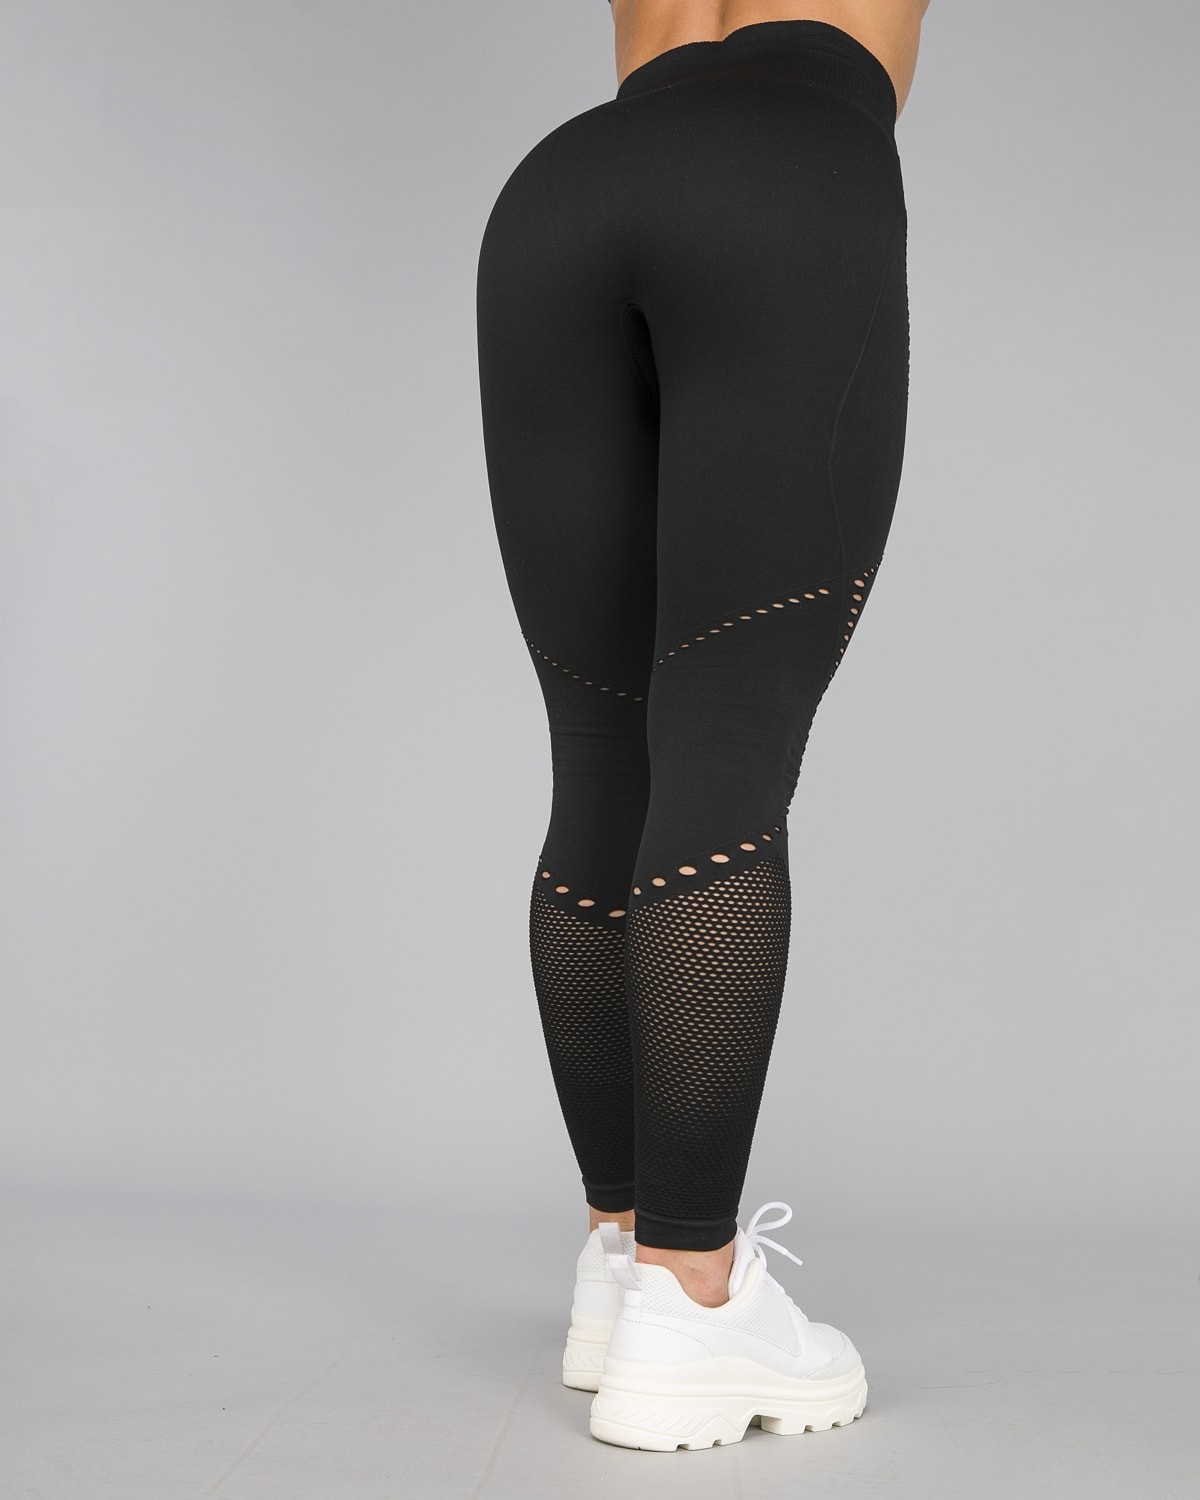 Workout Empire – Sculpt Leggings – Svart15